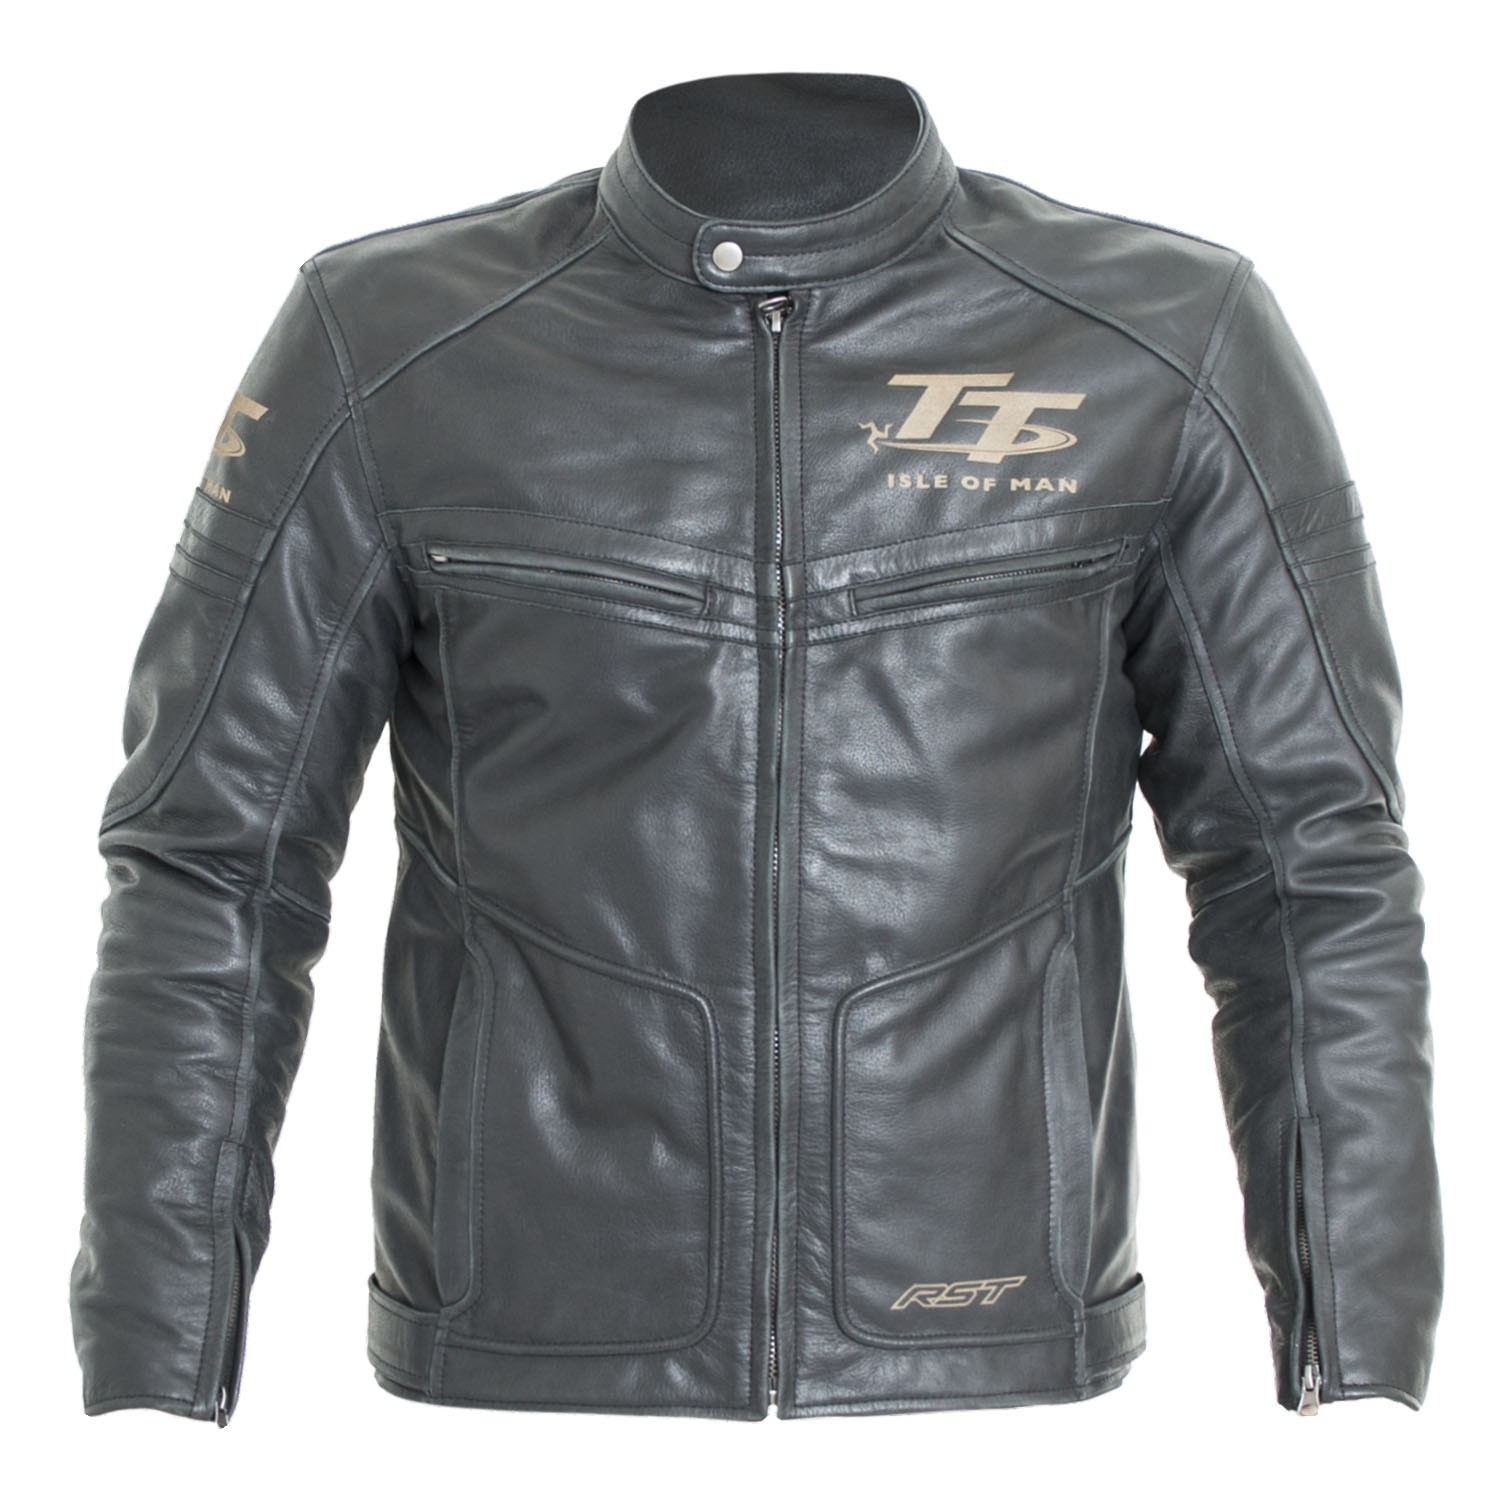 RST IOM TT Roadster Jacket